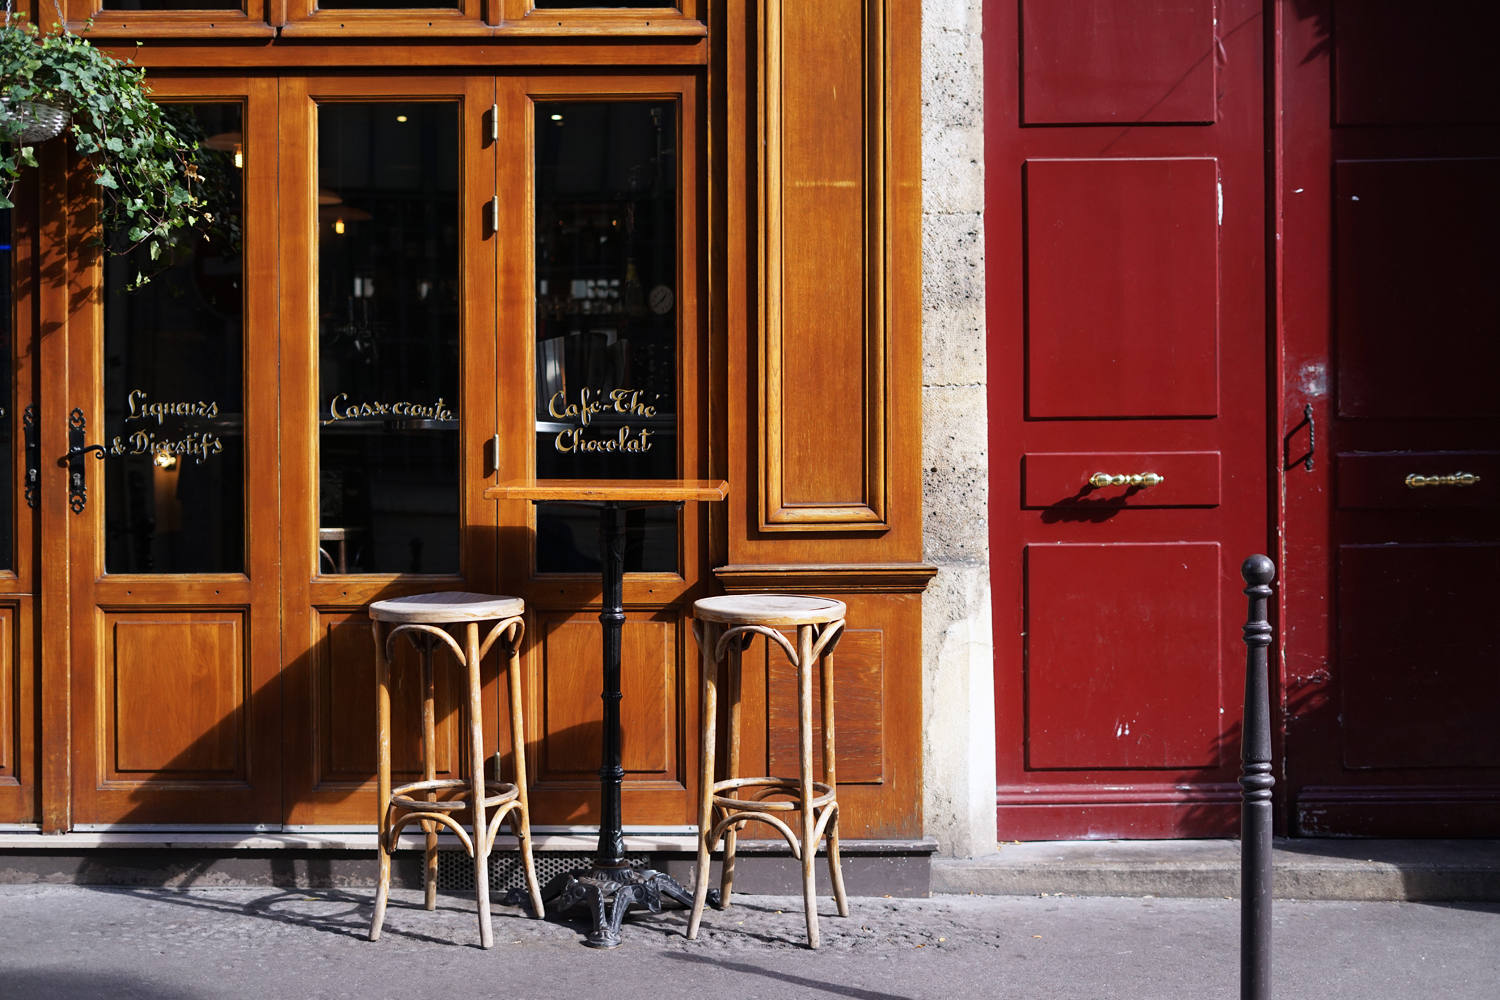 02paris-france-cafe-travel